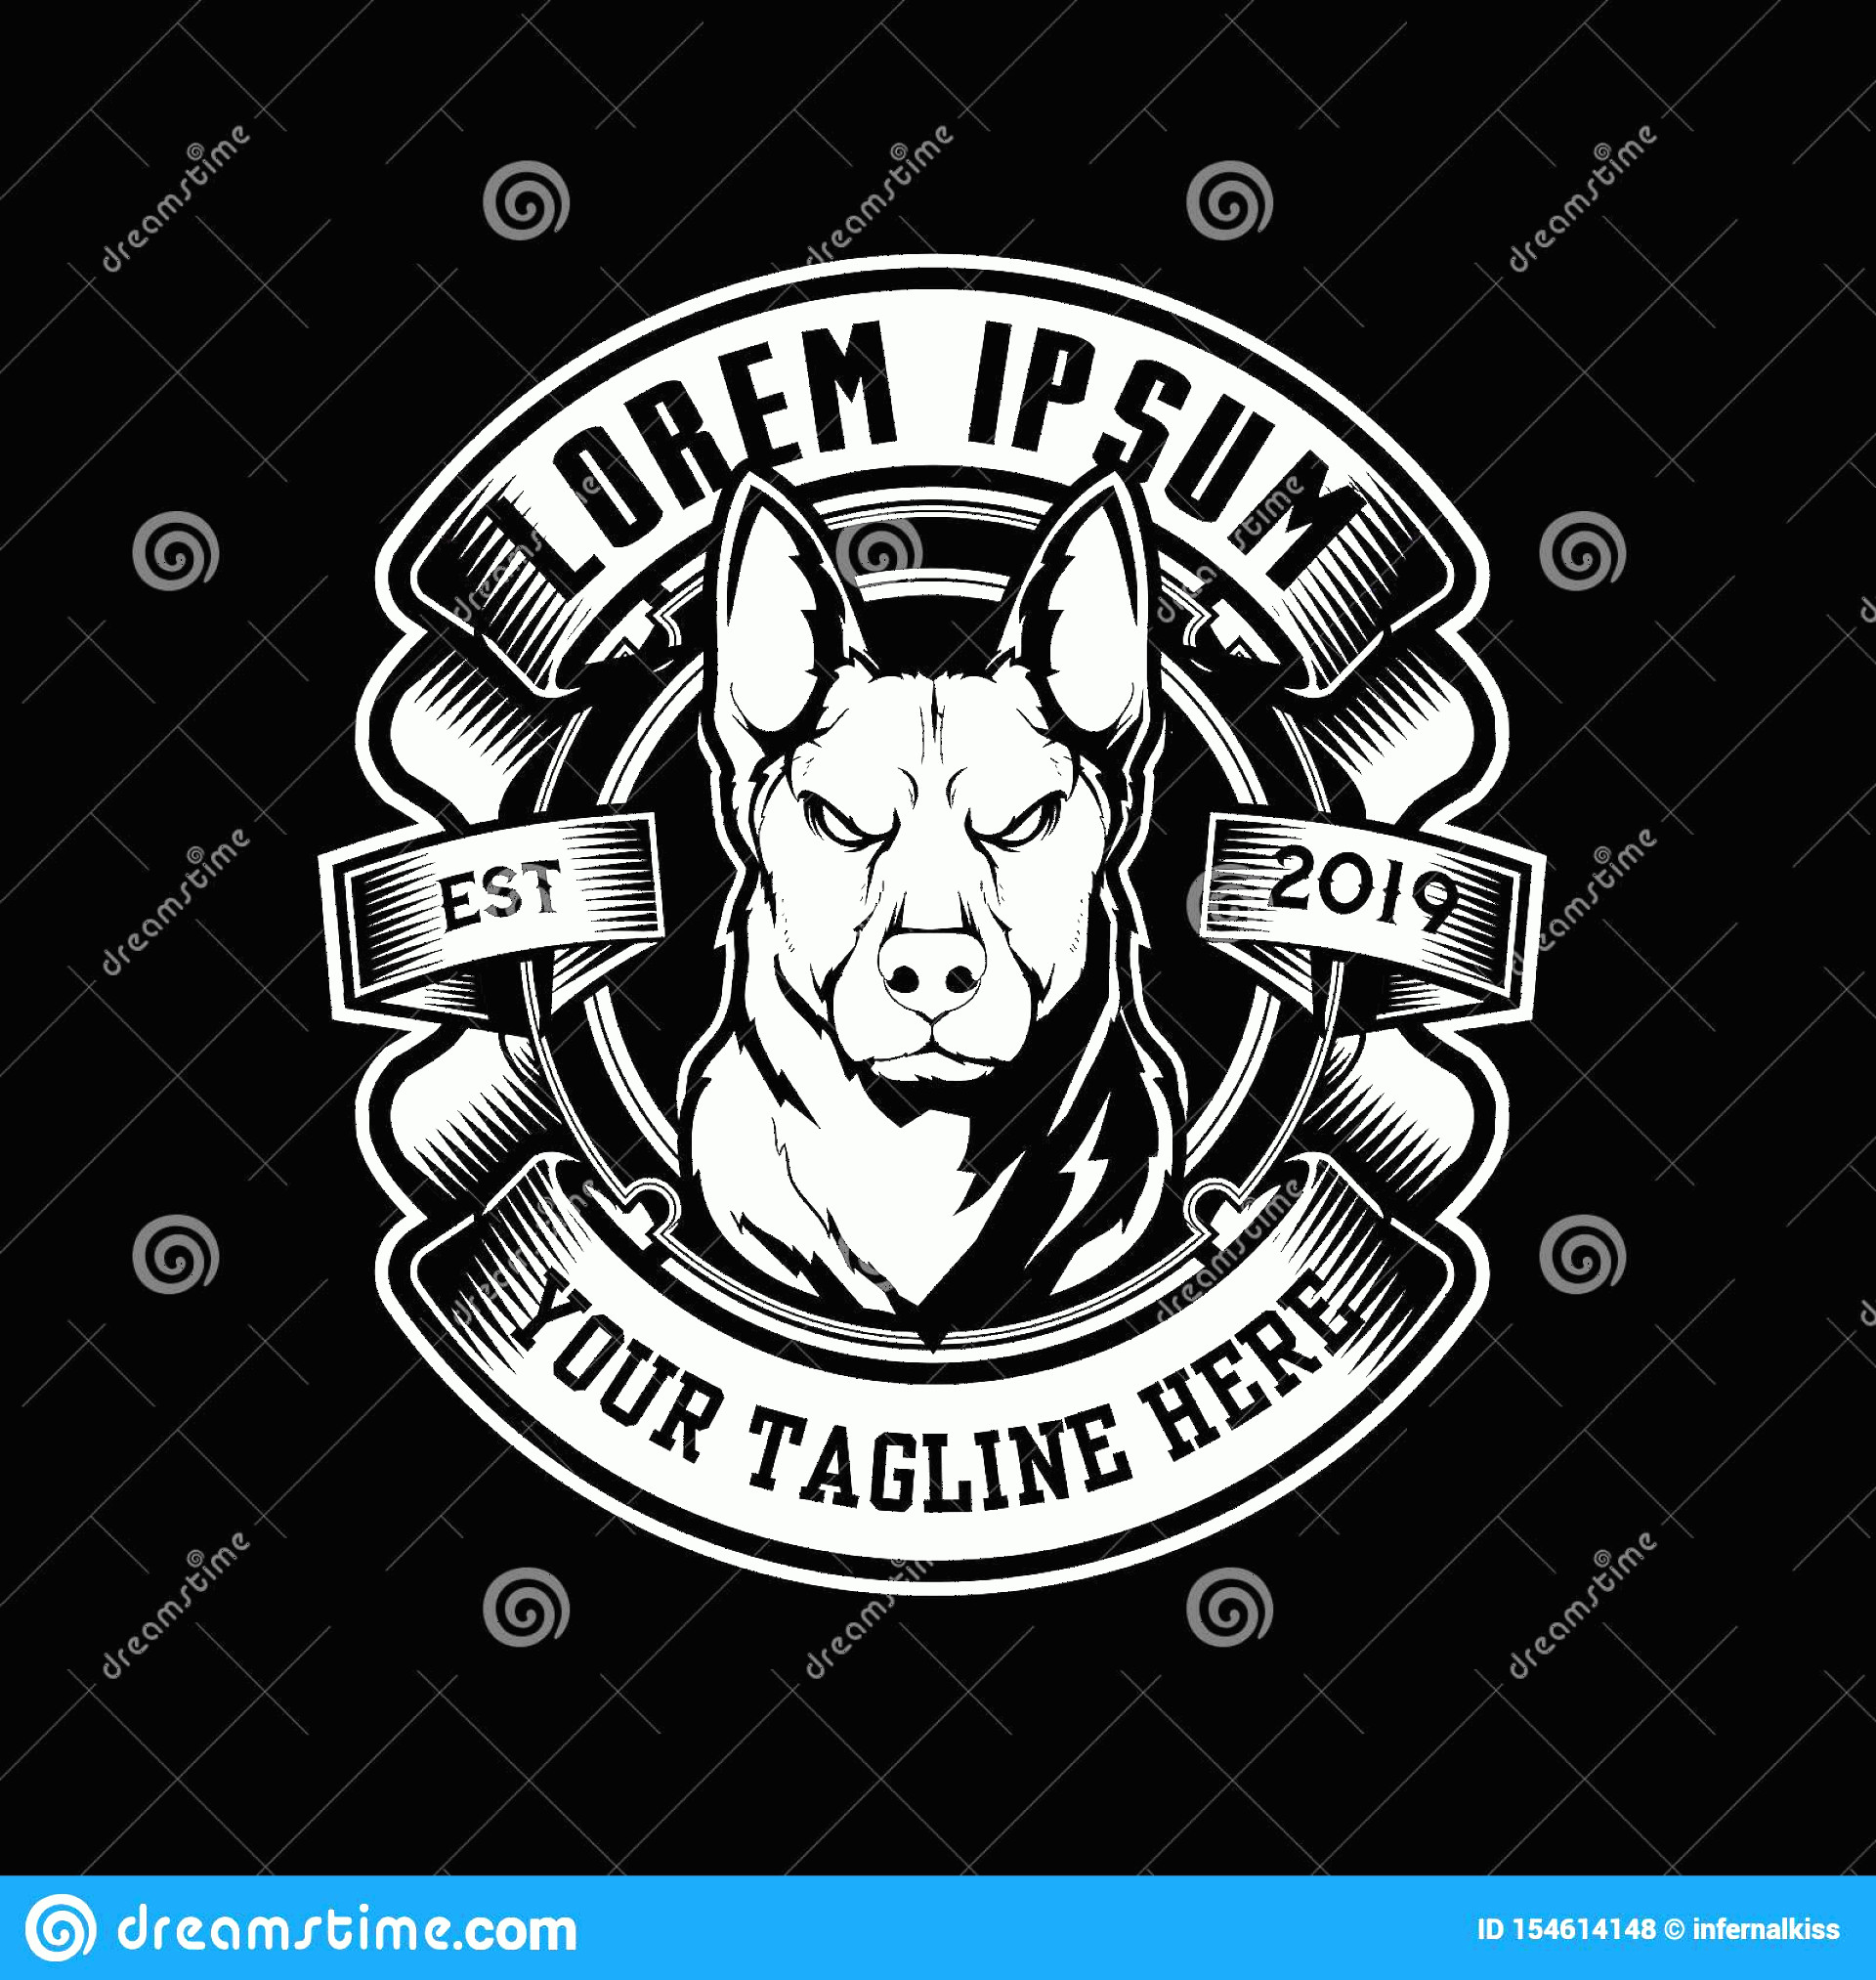 Angry Dog Vector Black And White: Black White Angry Dog Vector Badged Logo Template Wildlife Wolf Cartoon Character Image